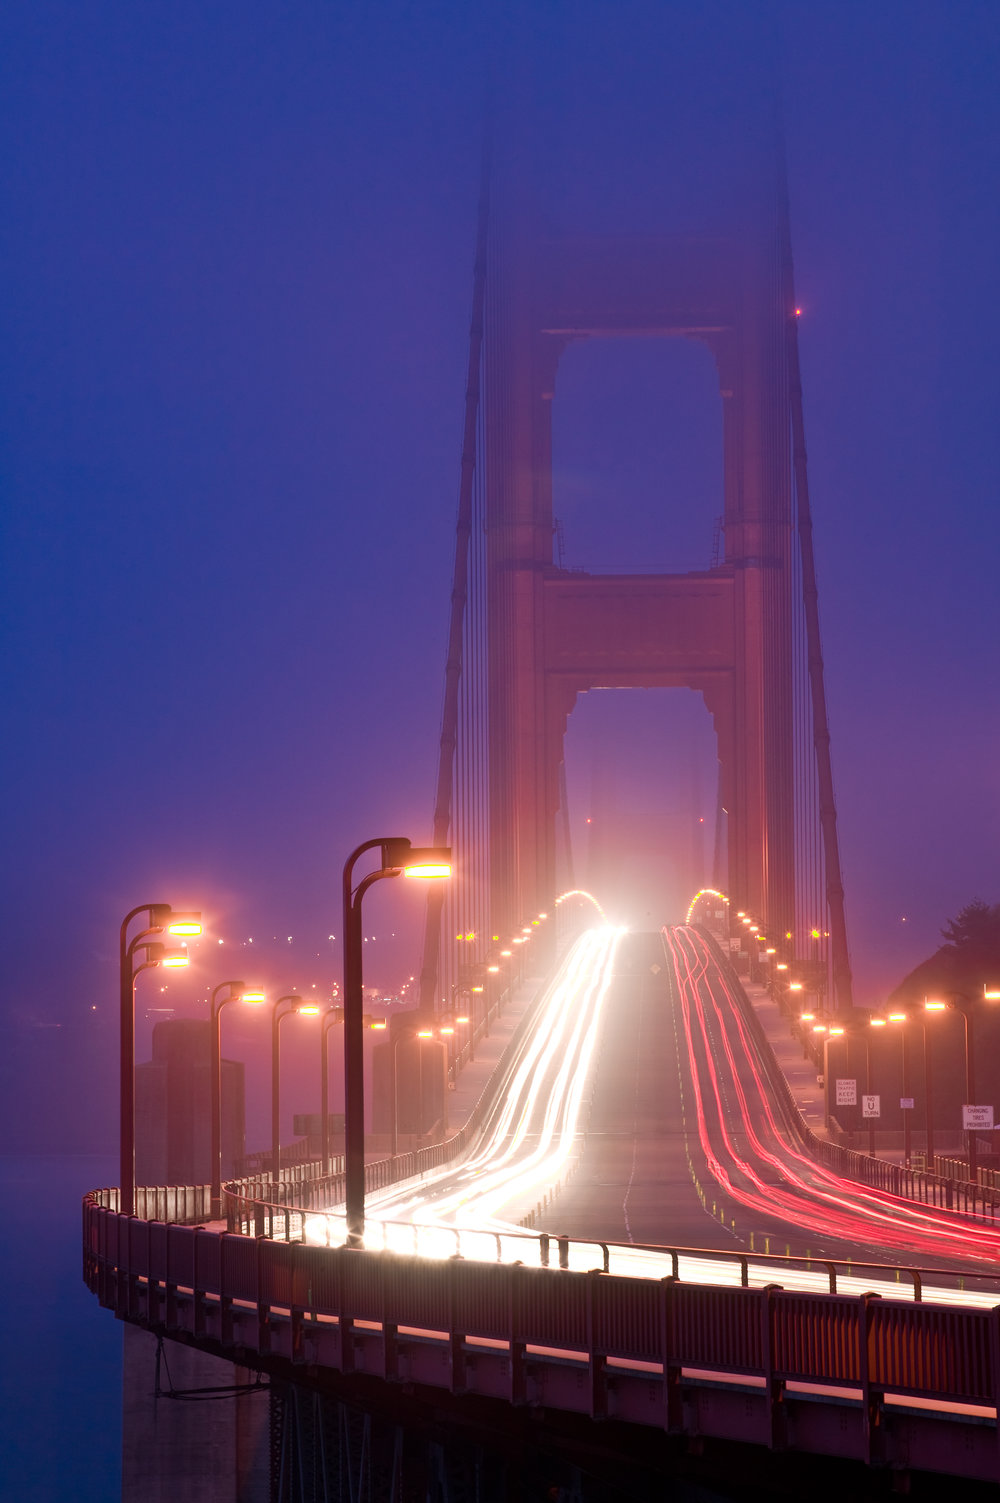 Golden Gate Bridge, Car Trails, Fog